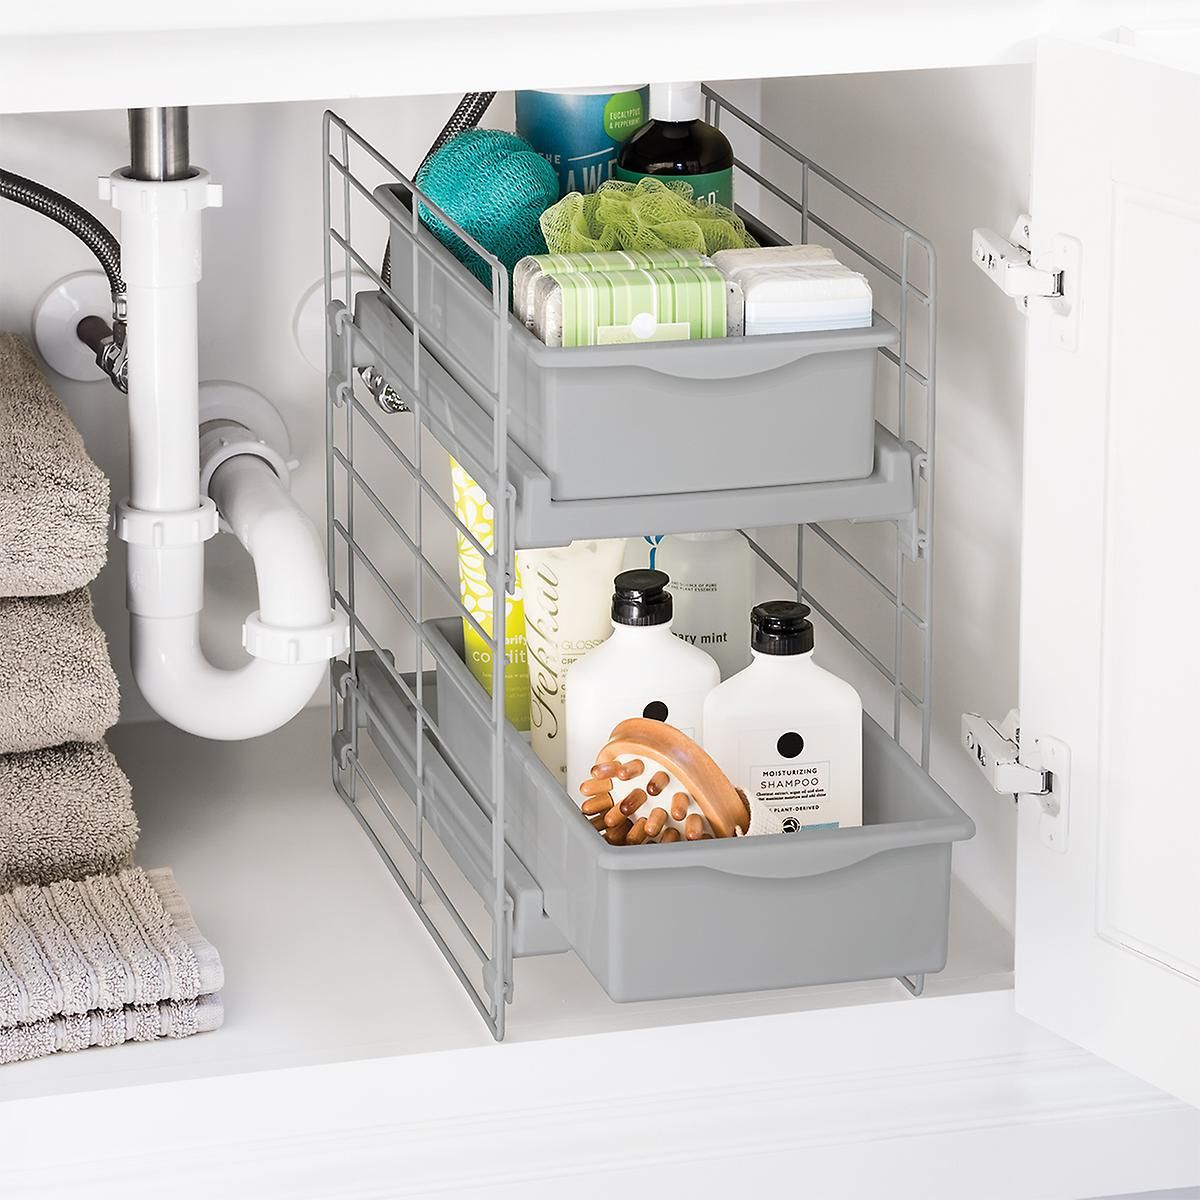 Sliding 2 Drawer Organizer In 2020 Drawer Organisers Cabinets